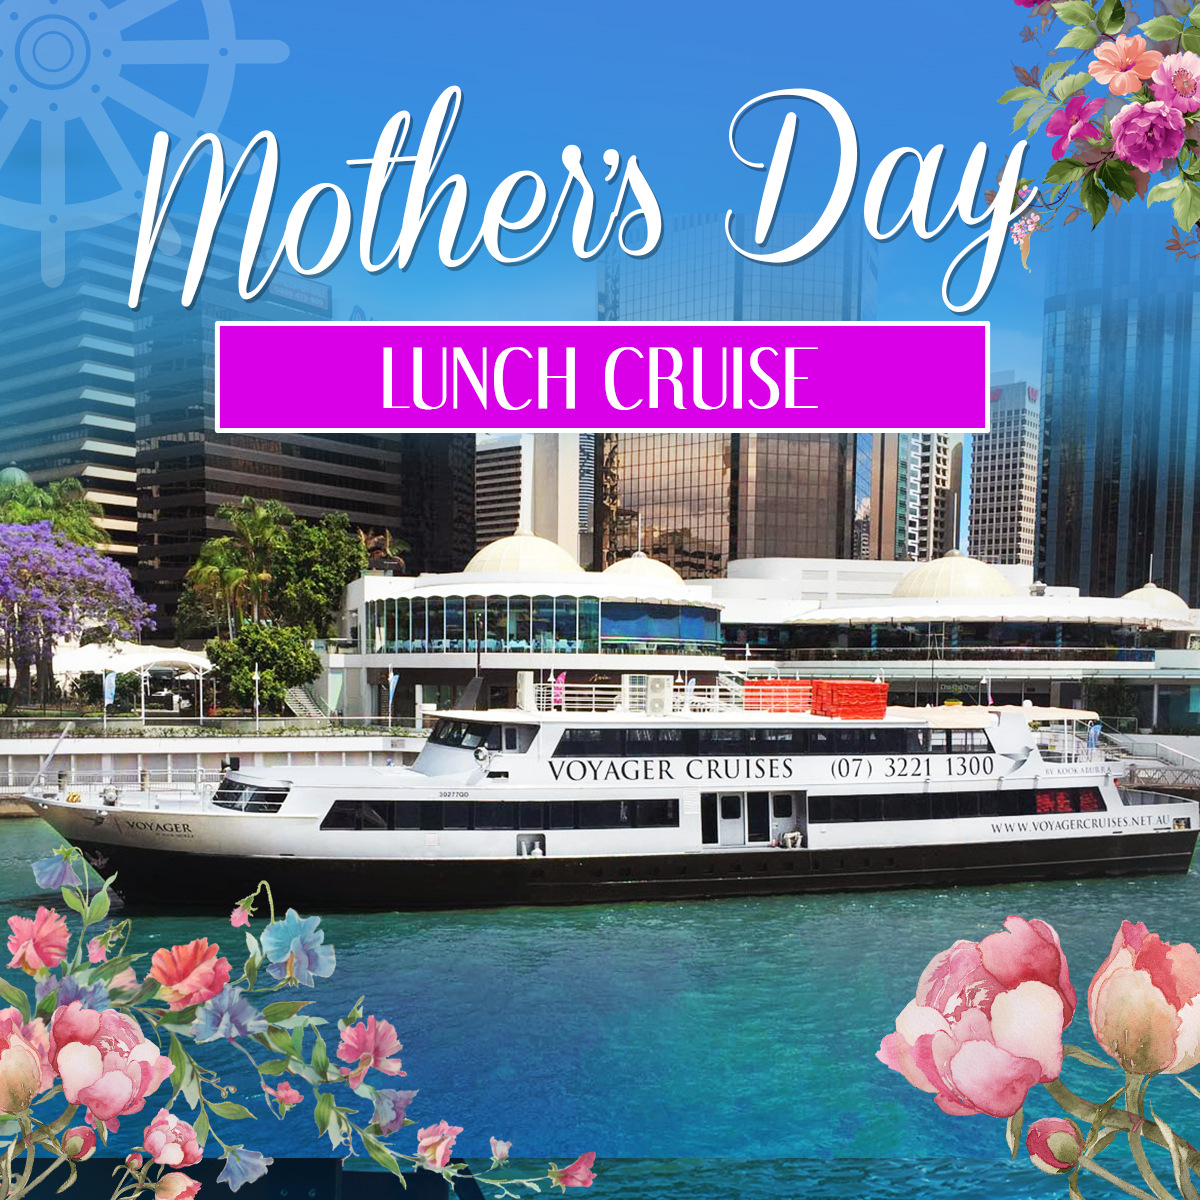 Mothers Day Lunch Cruise on Voyager